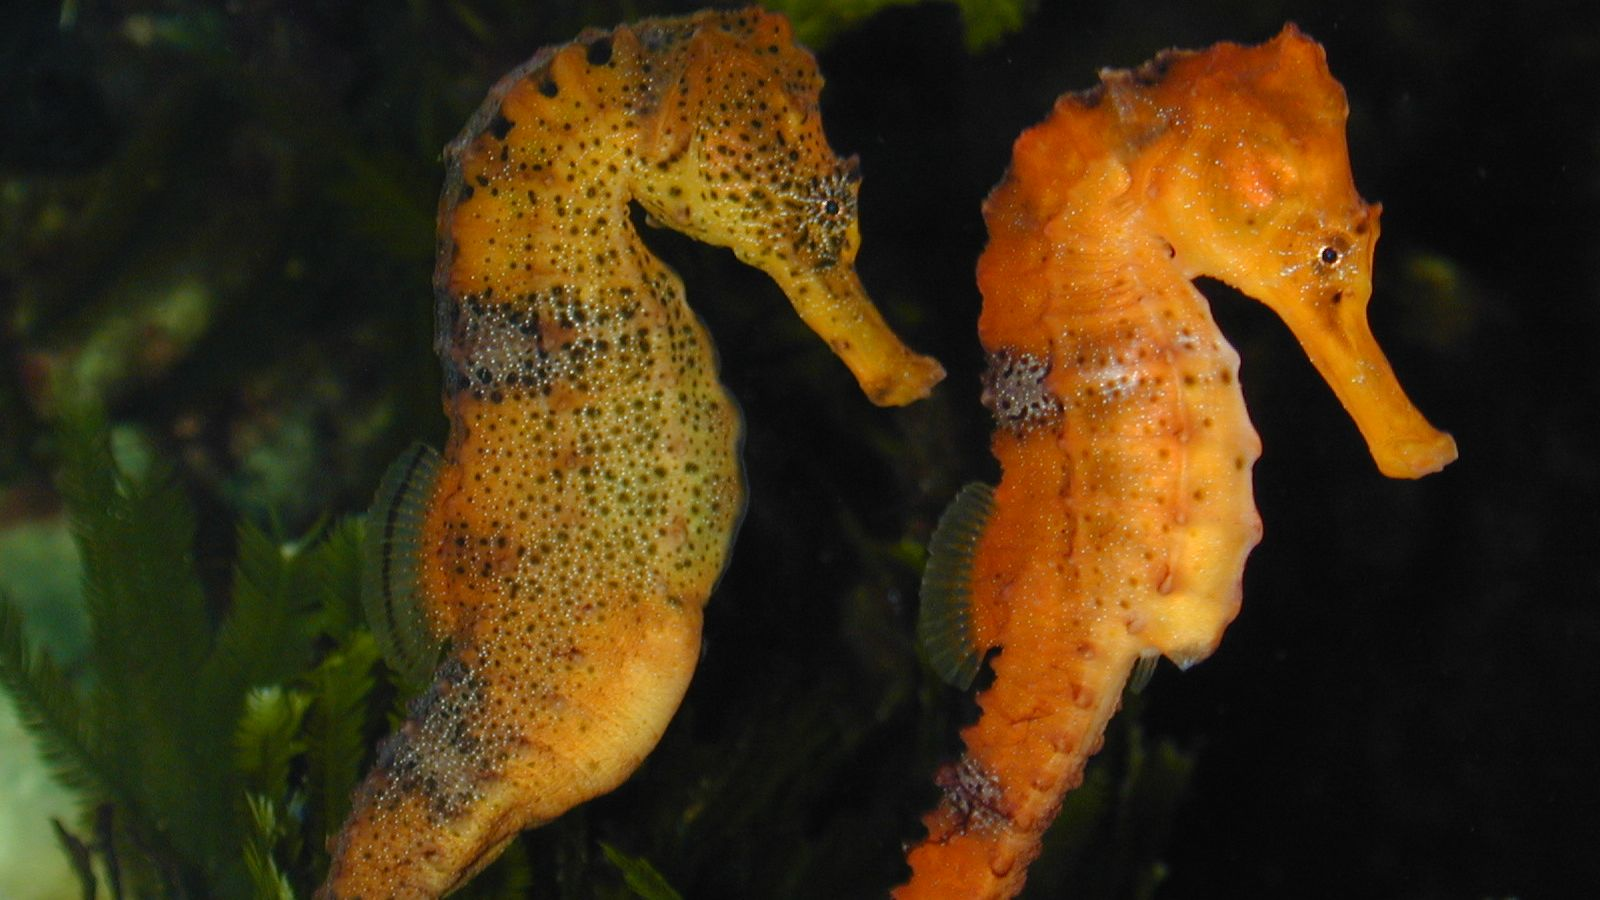 Real Monstrosities: Seahorseseahorse